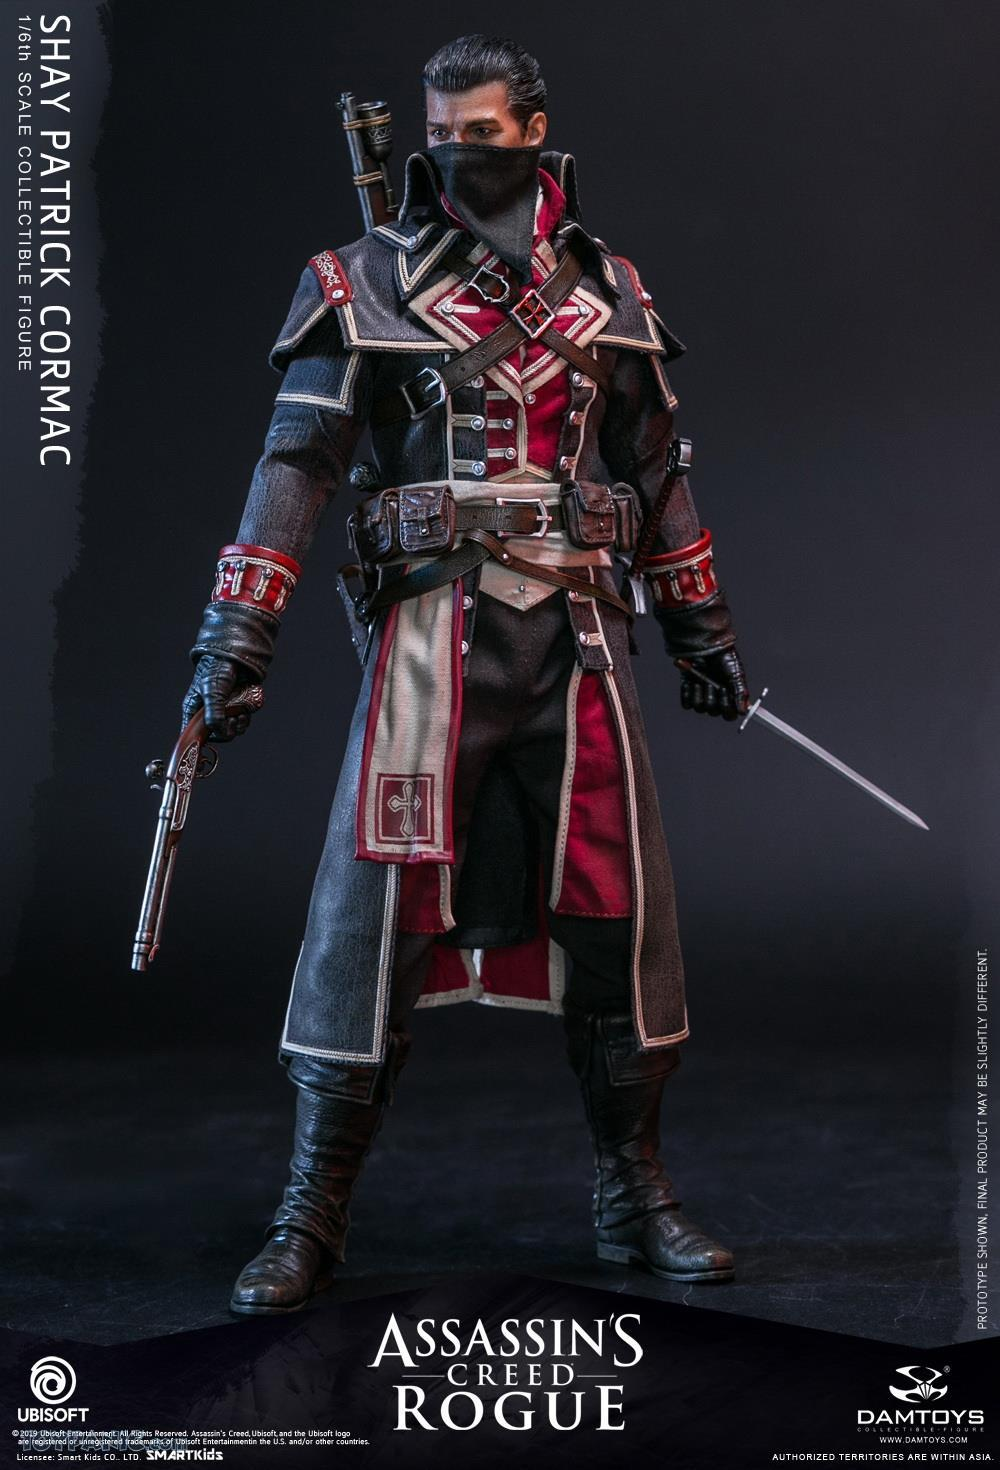 male - NEW PRODUCT: DAMTOYS: Assassins Creed Rogue - 1/6th scale Shay Patrick Cormac Collectible Figure 82220118